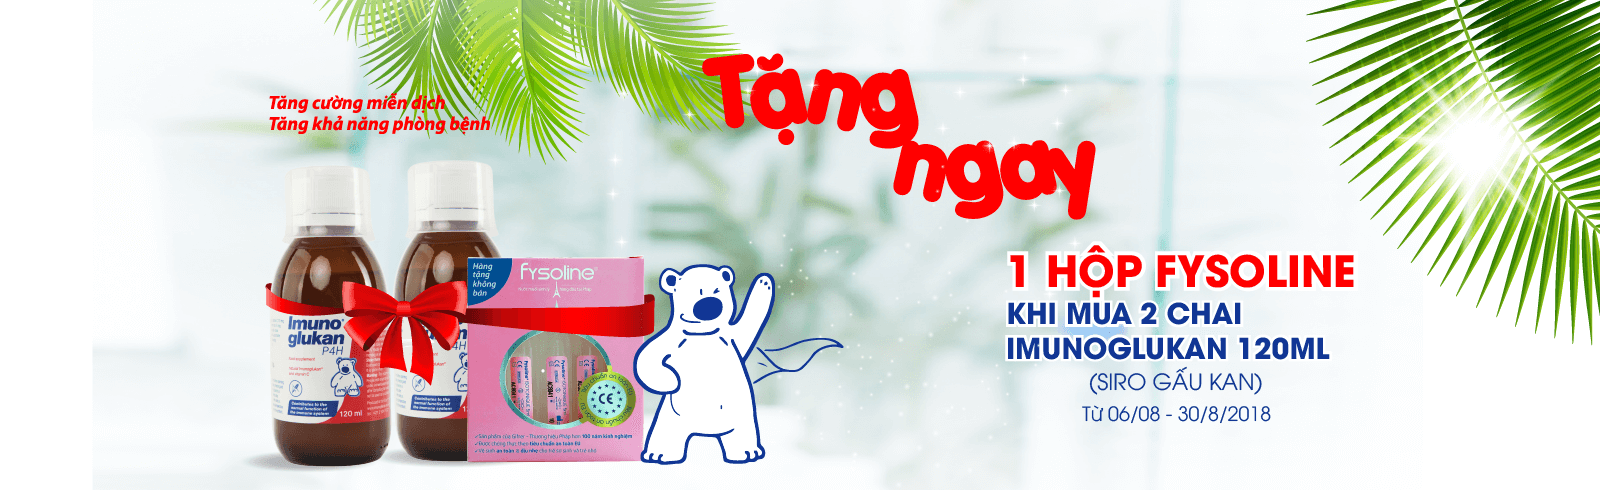 COVER-BANNER-KM-THANG-8-1600-x-490